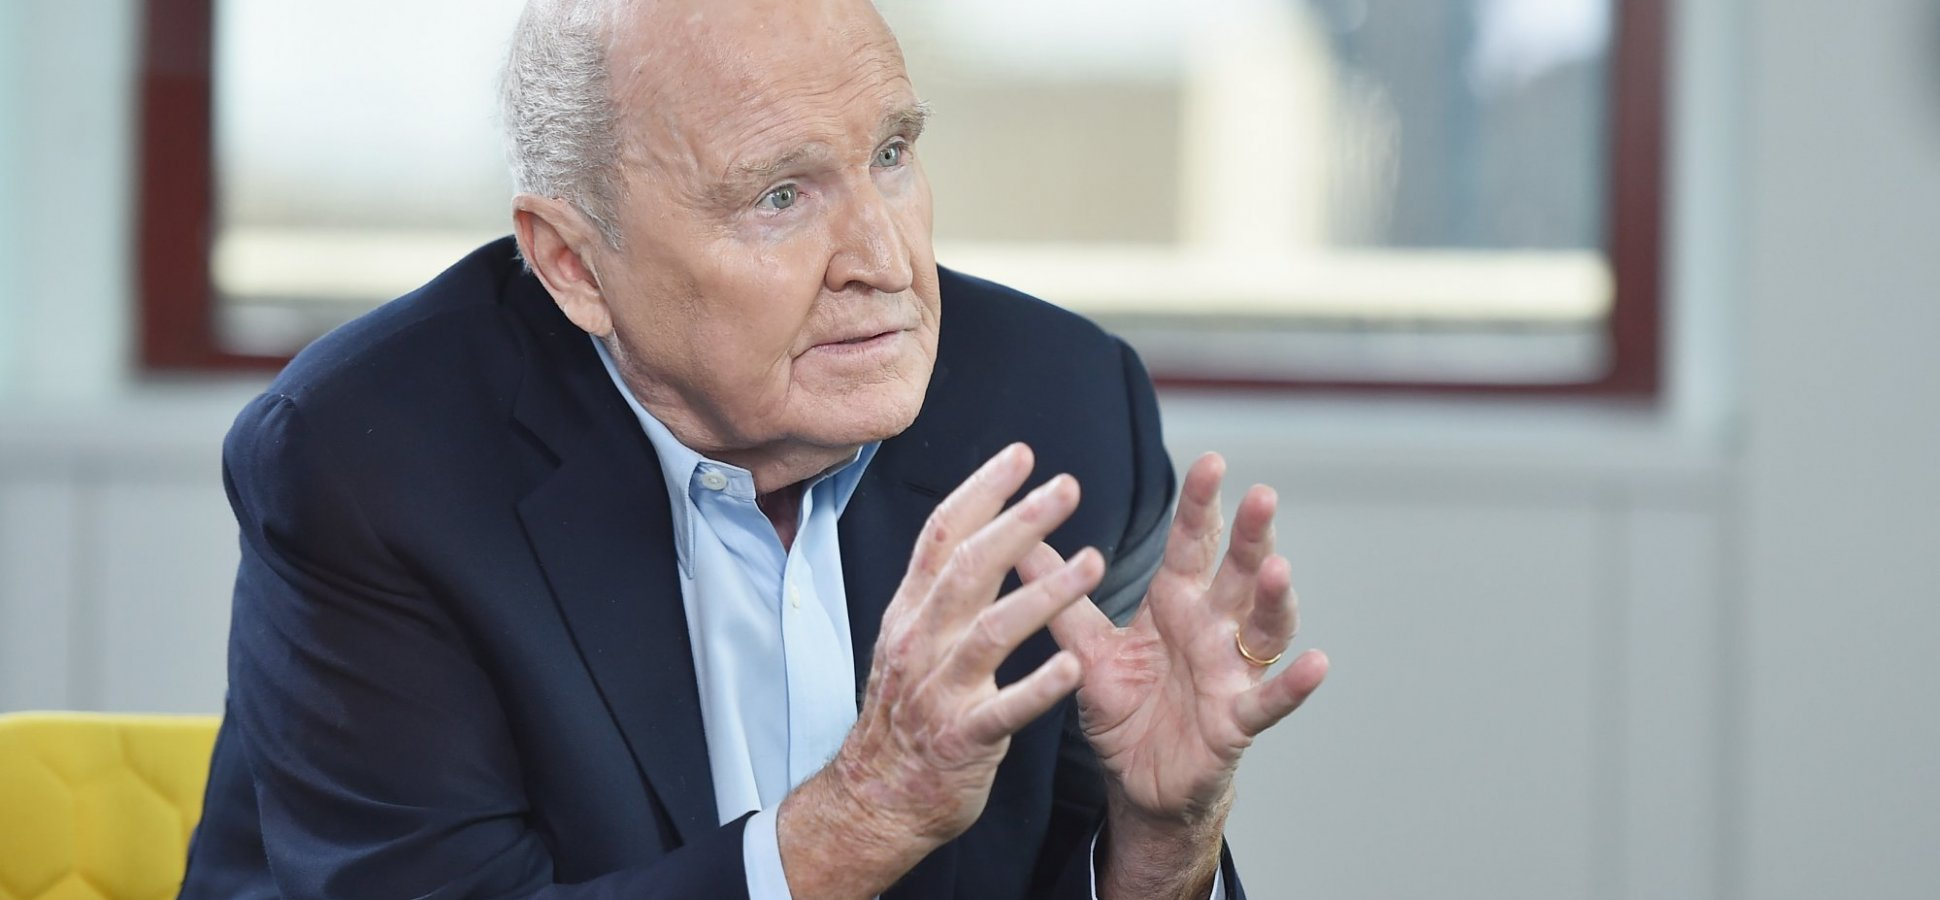 Jack Welch Always Wanted His Team Members to Take Ownership of Their Work. Here's Why